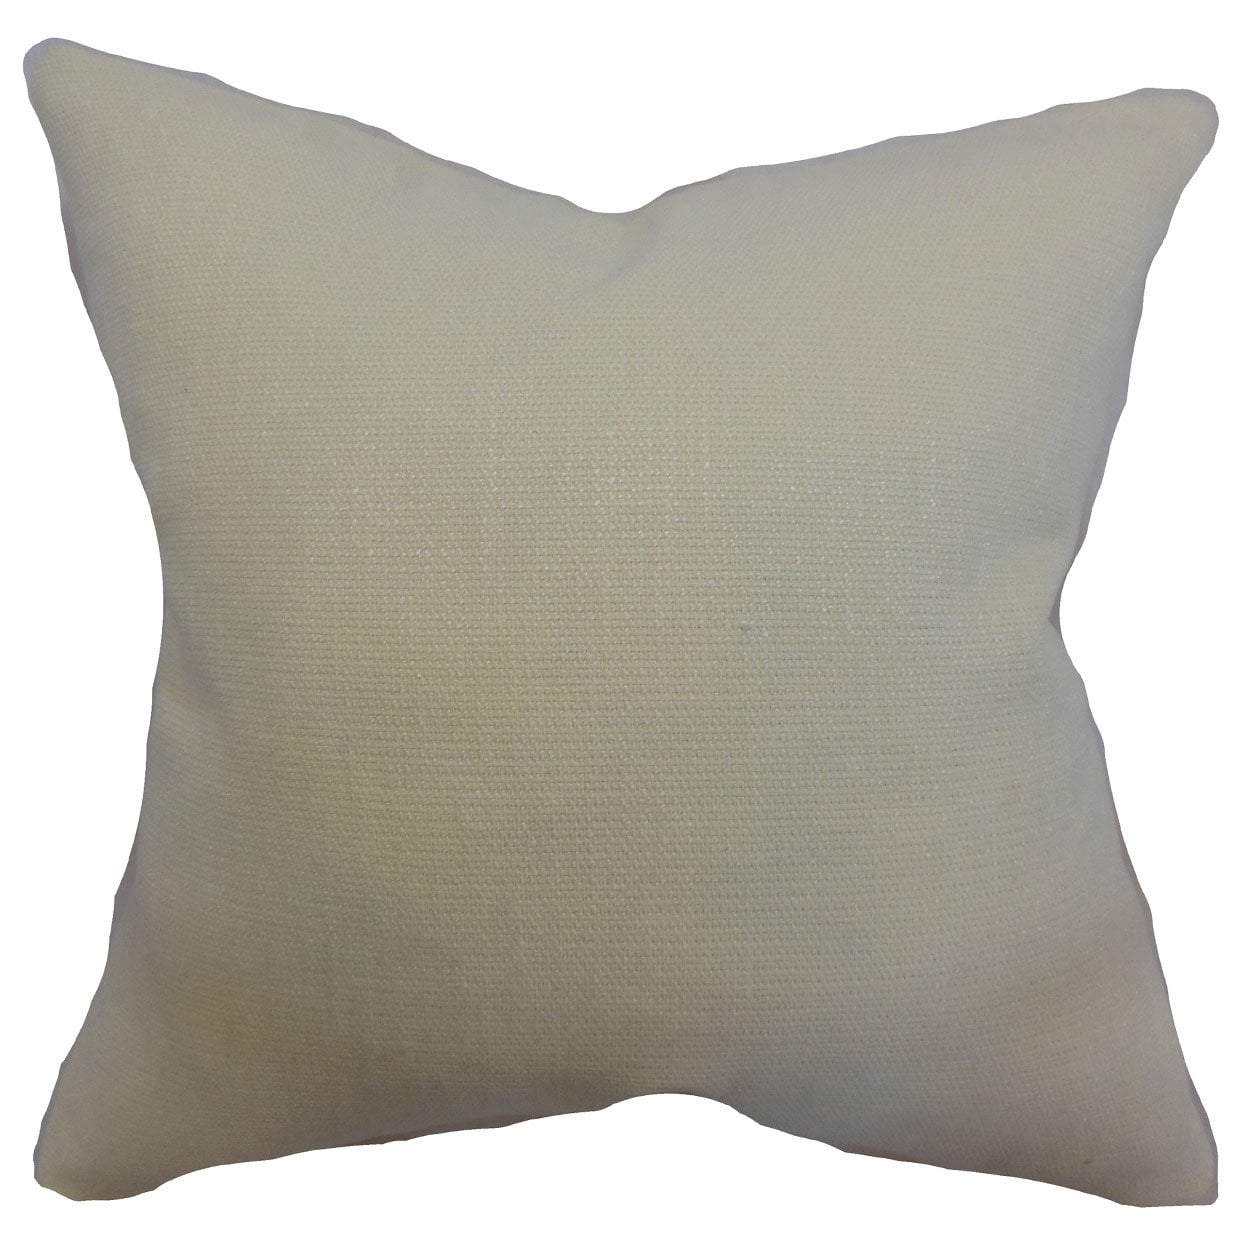 White Cotton Solid Contemporary Throw Pillow Cover